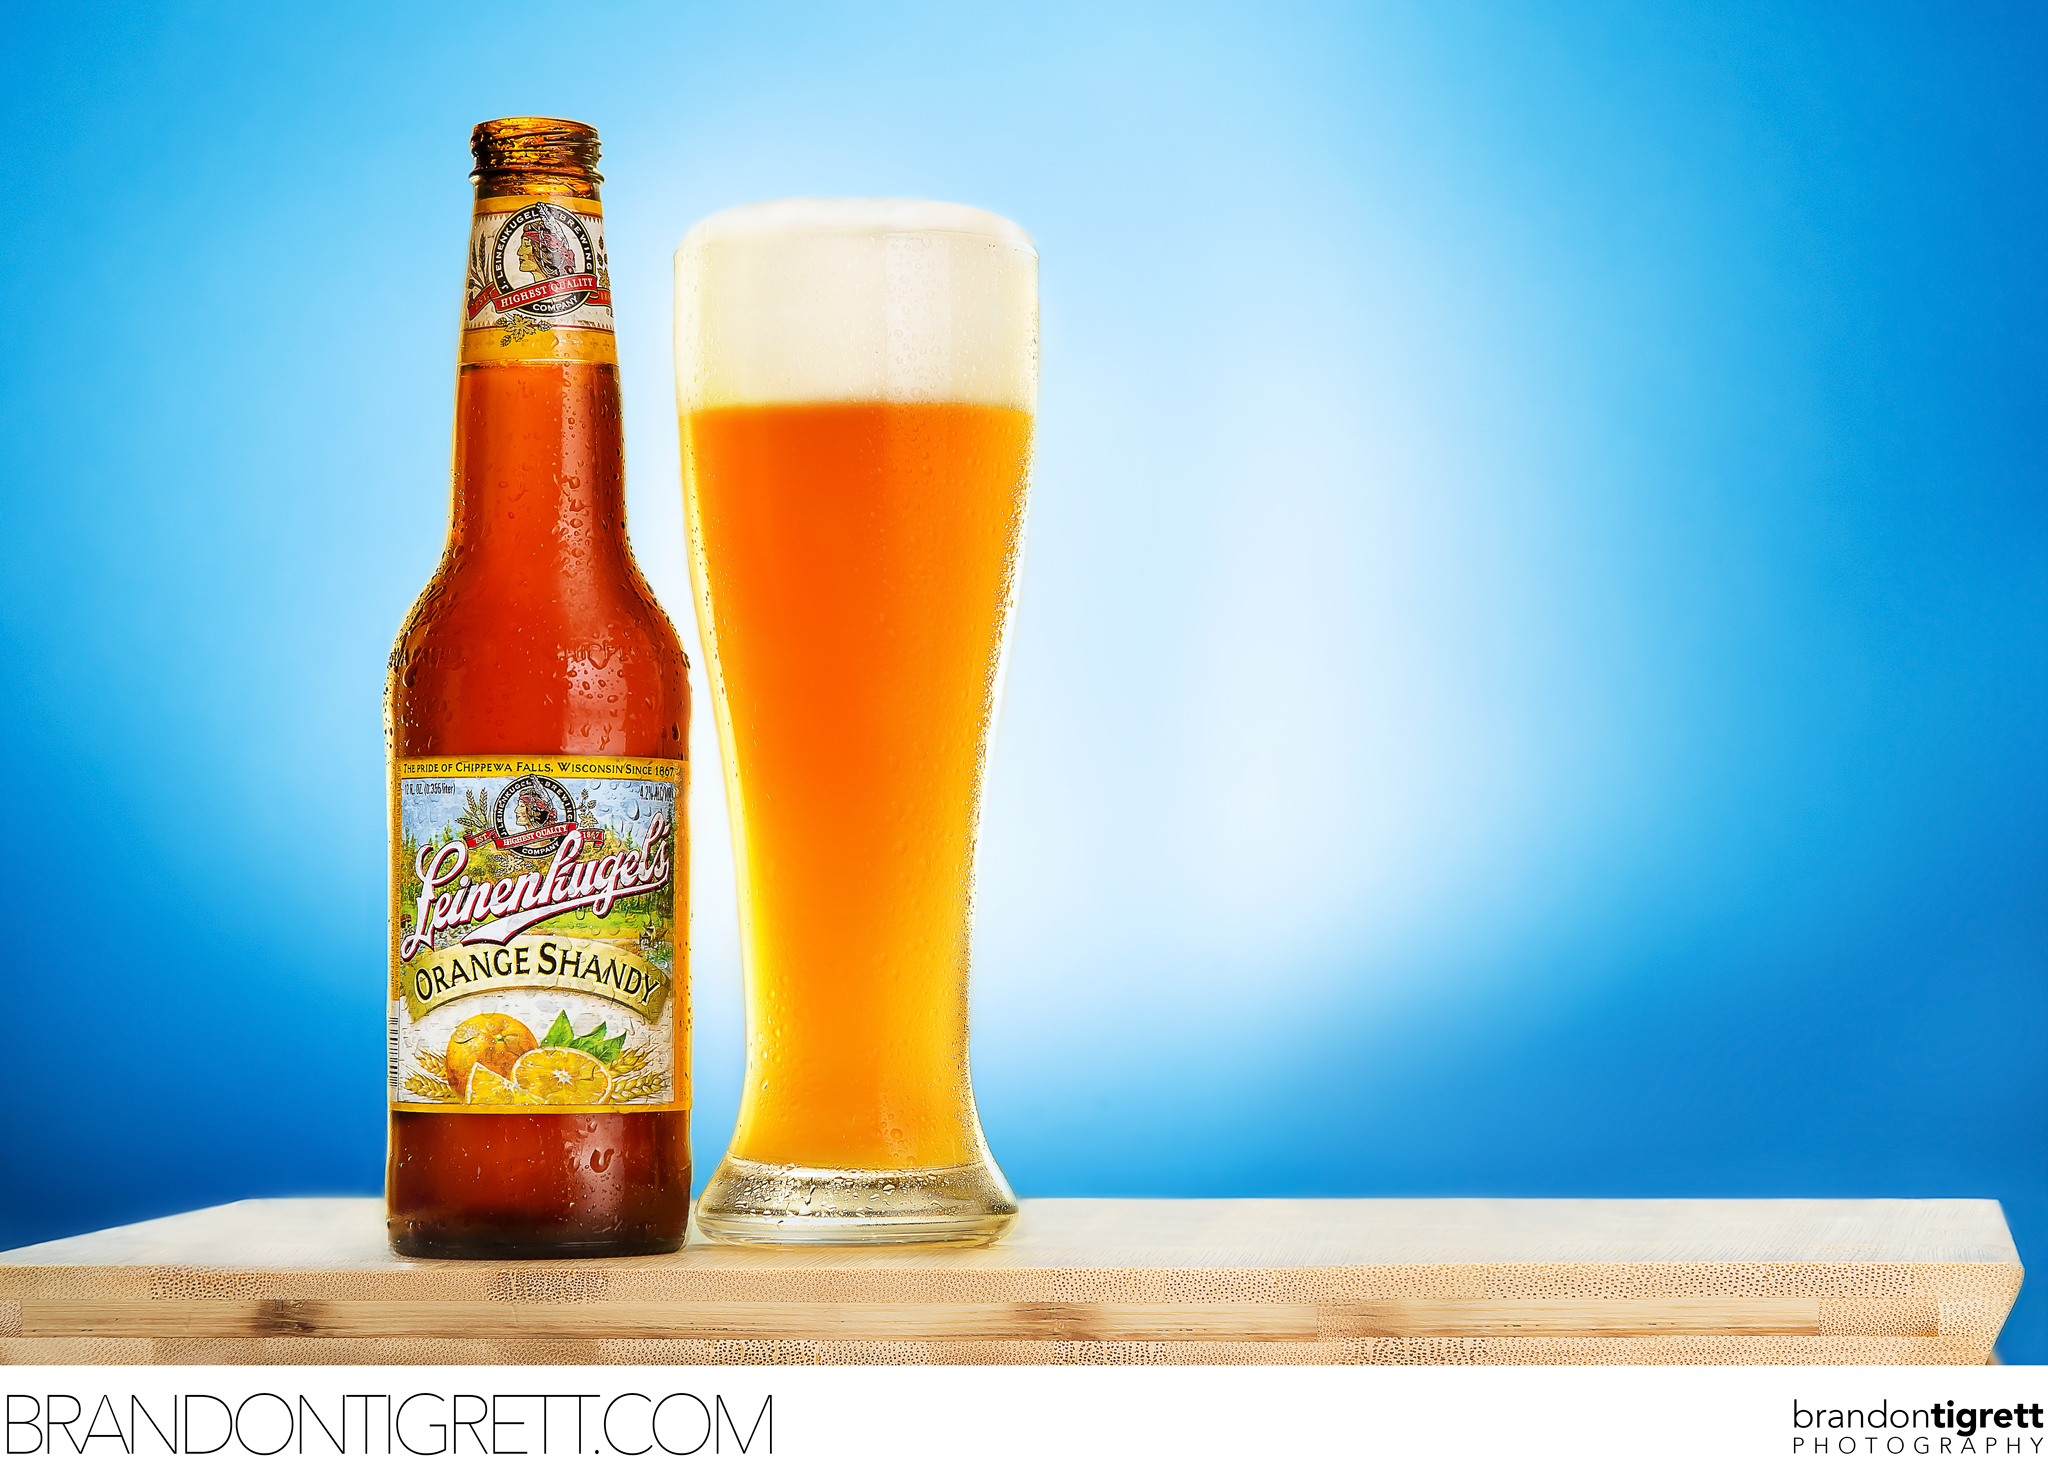 Leinenkugel Advertising Photo - Brandon Tigrett Photography - Scottsdale AZ